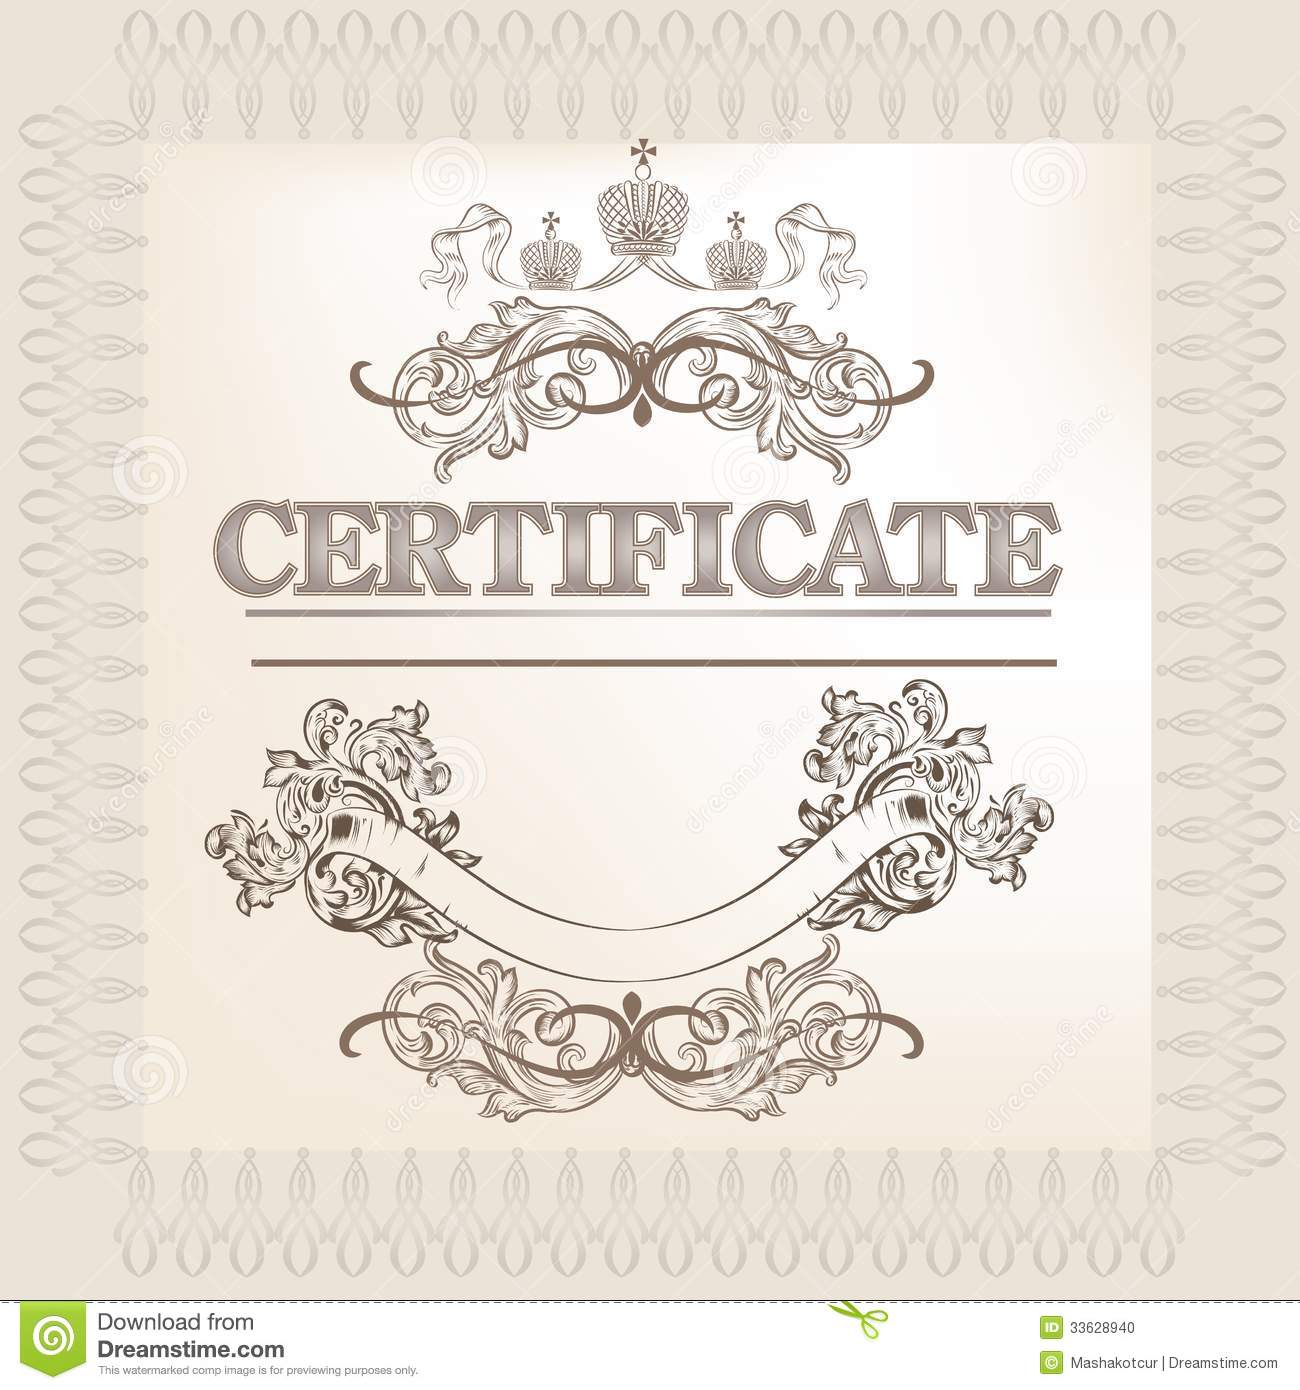 Certificate Design In Vintage Style Stock Vector